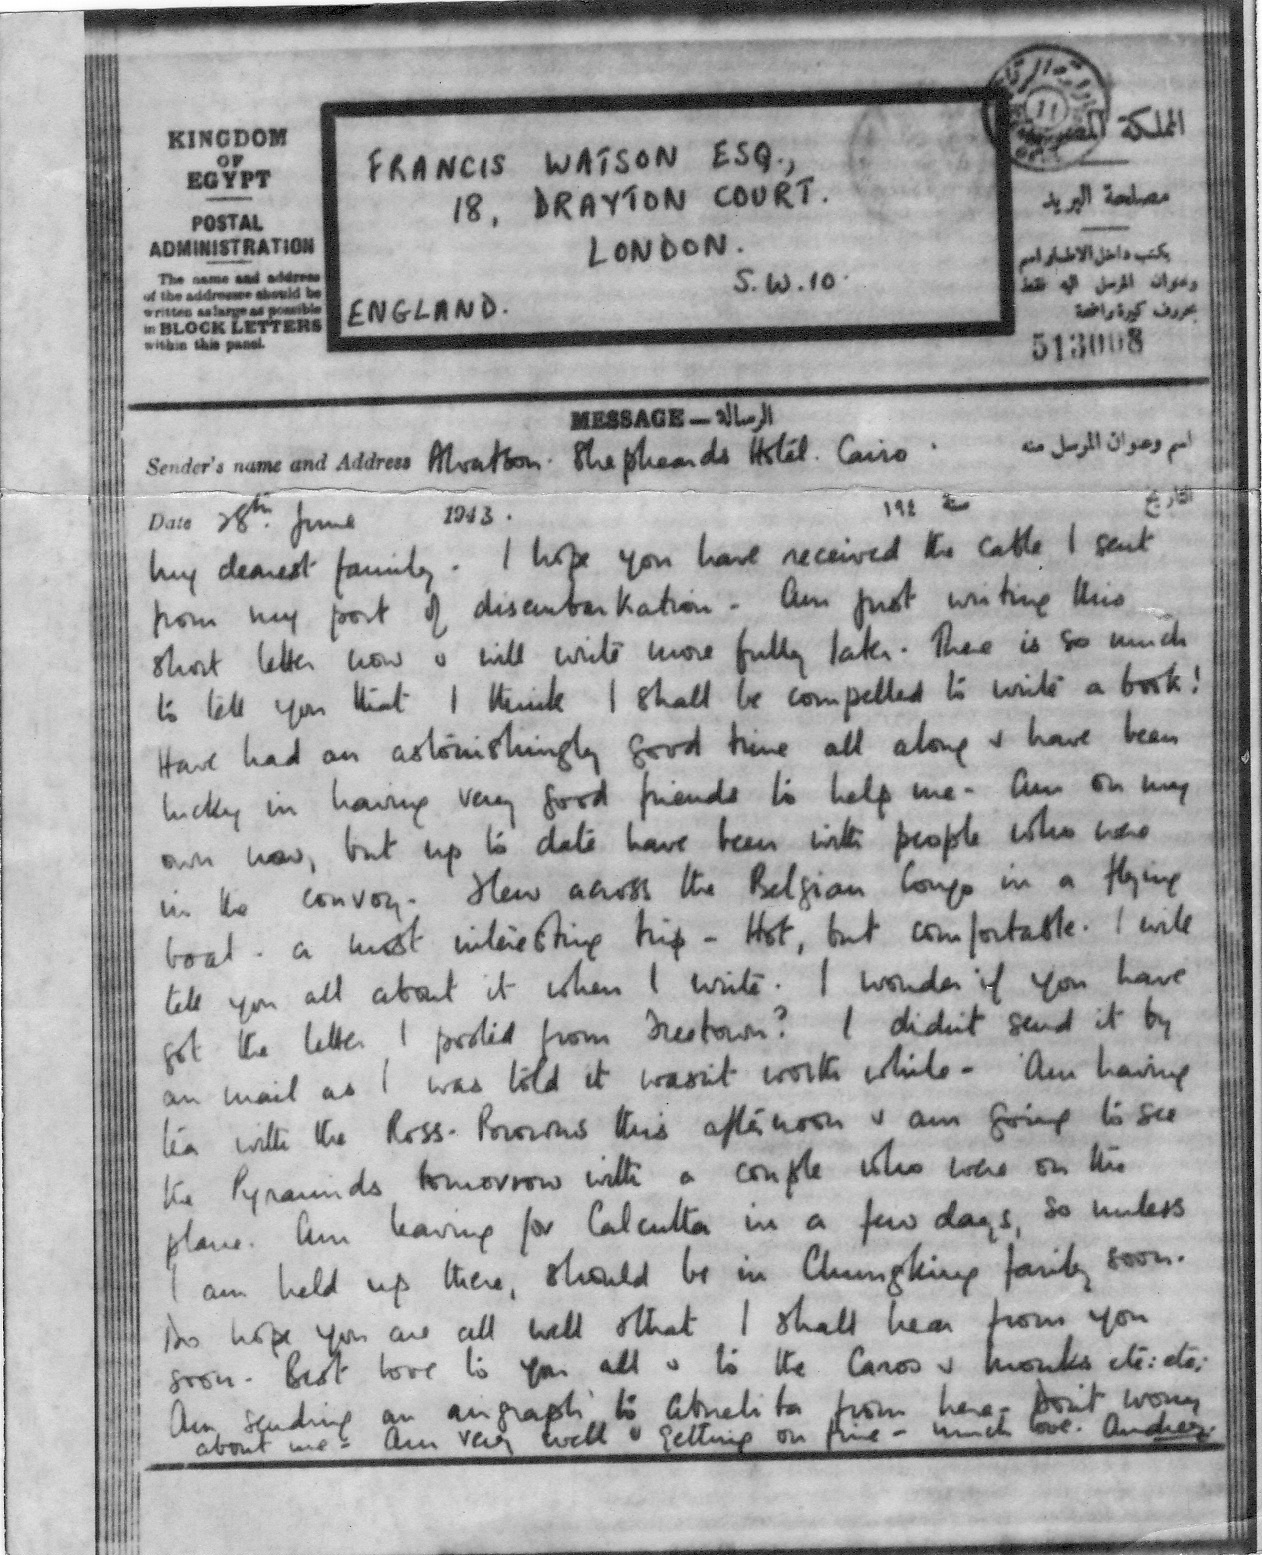 Audrey's letter to her family from Cairo, 1943